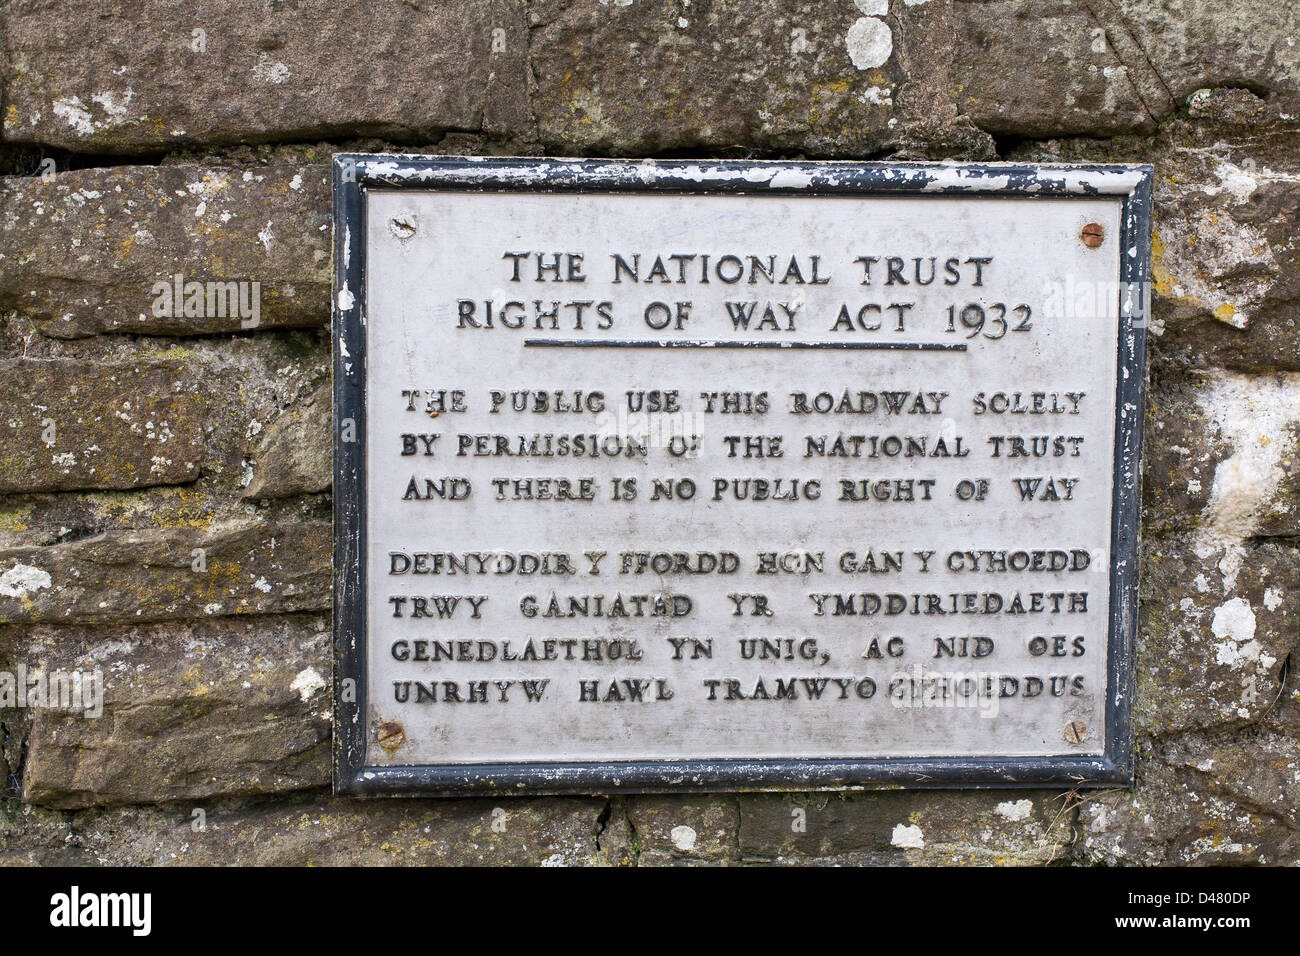 A plaque states the National Trust rights of way act 1932 in English and Welsh on a wall in Conwy, North Wales - Stock Image